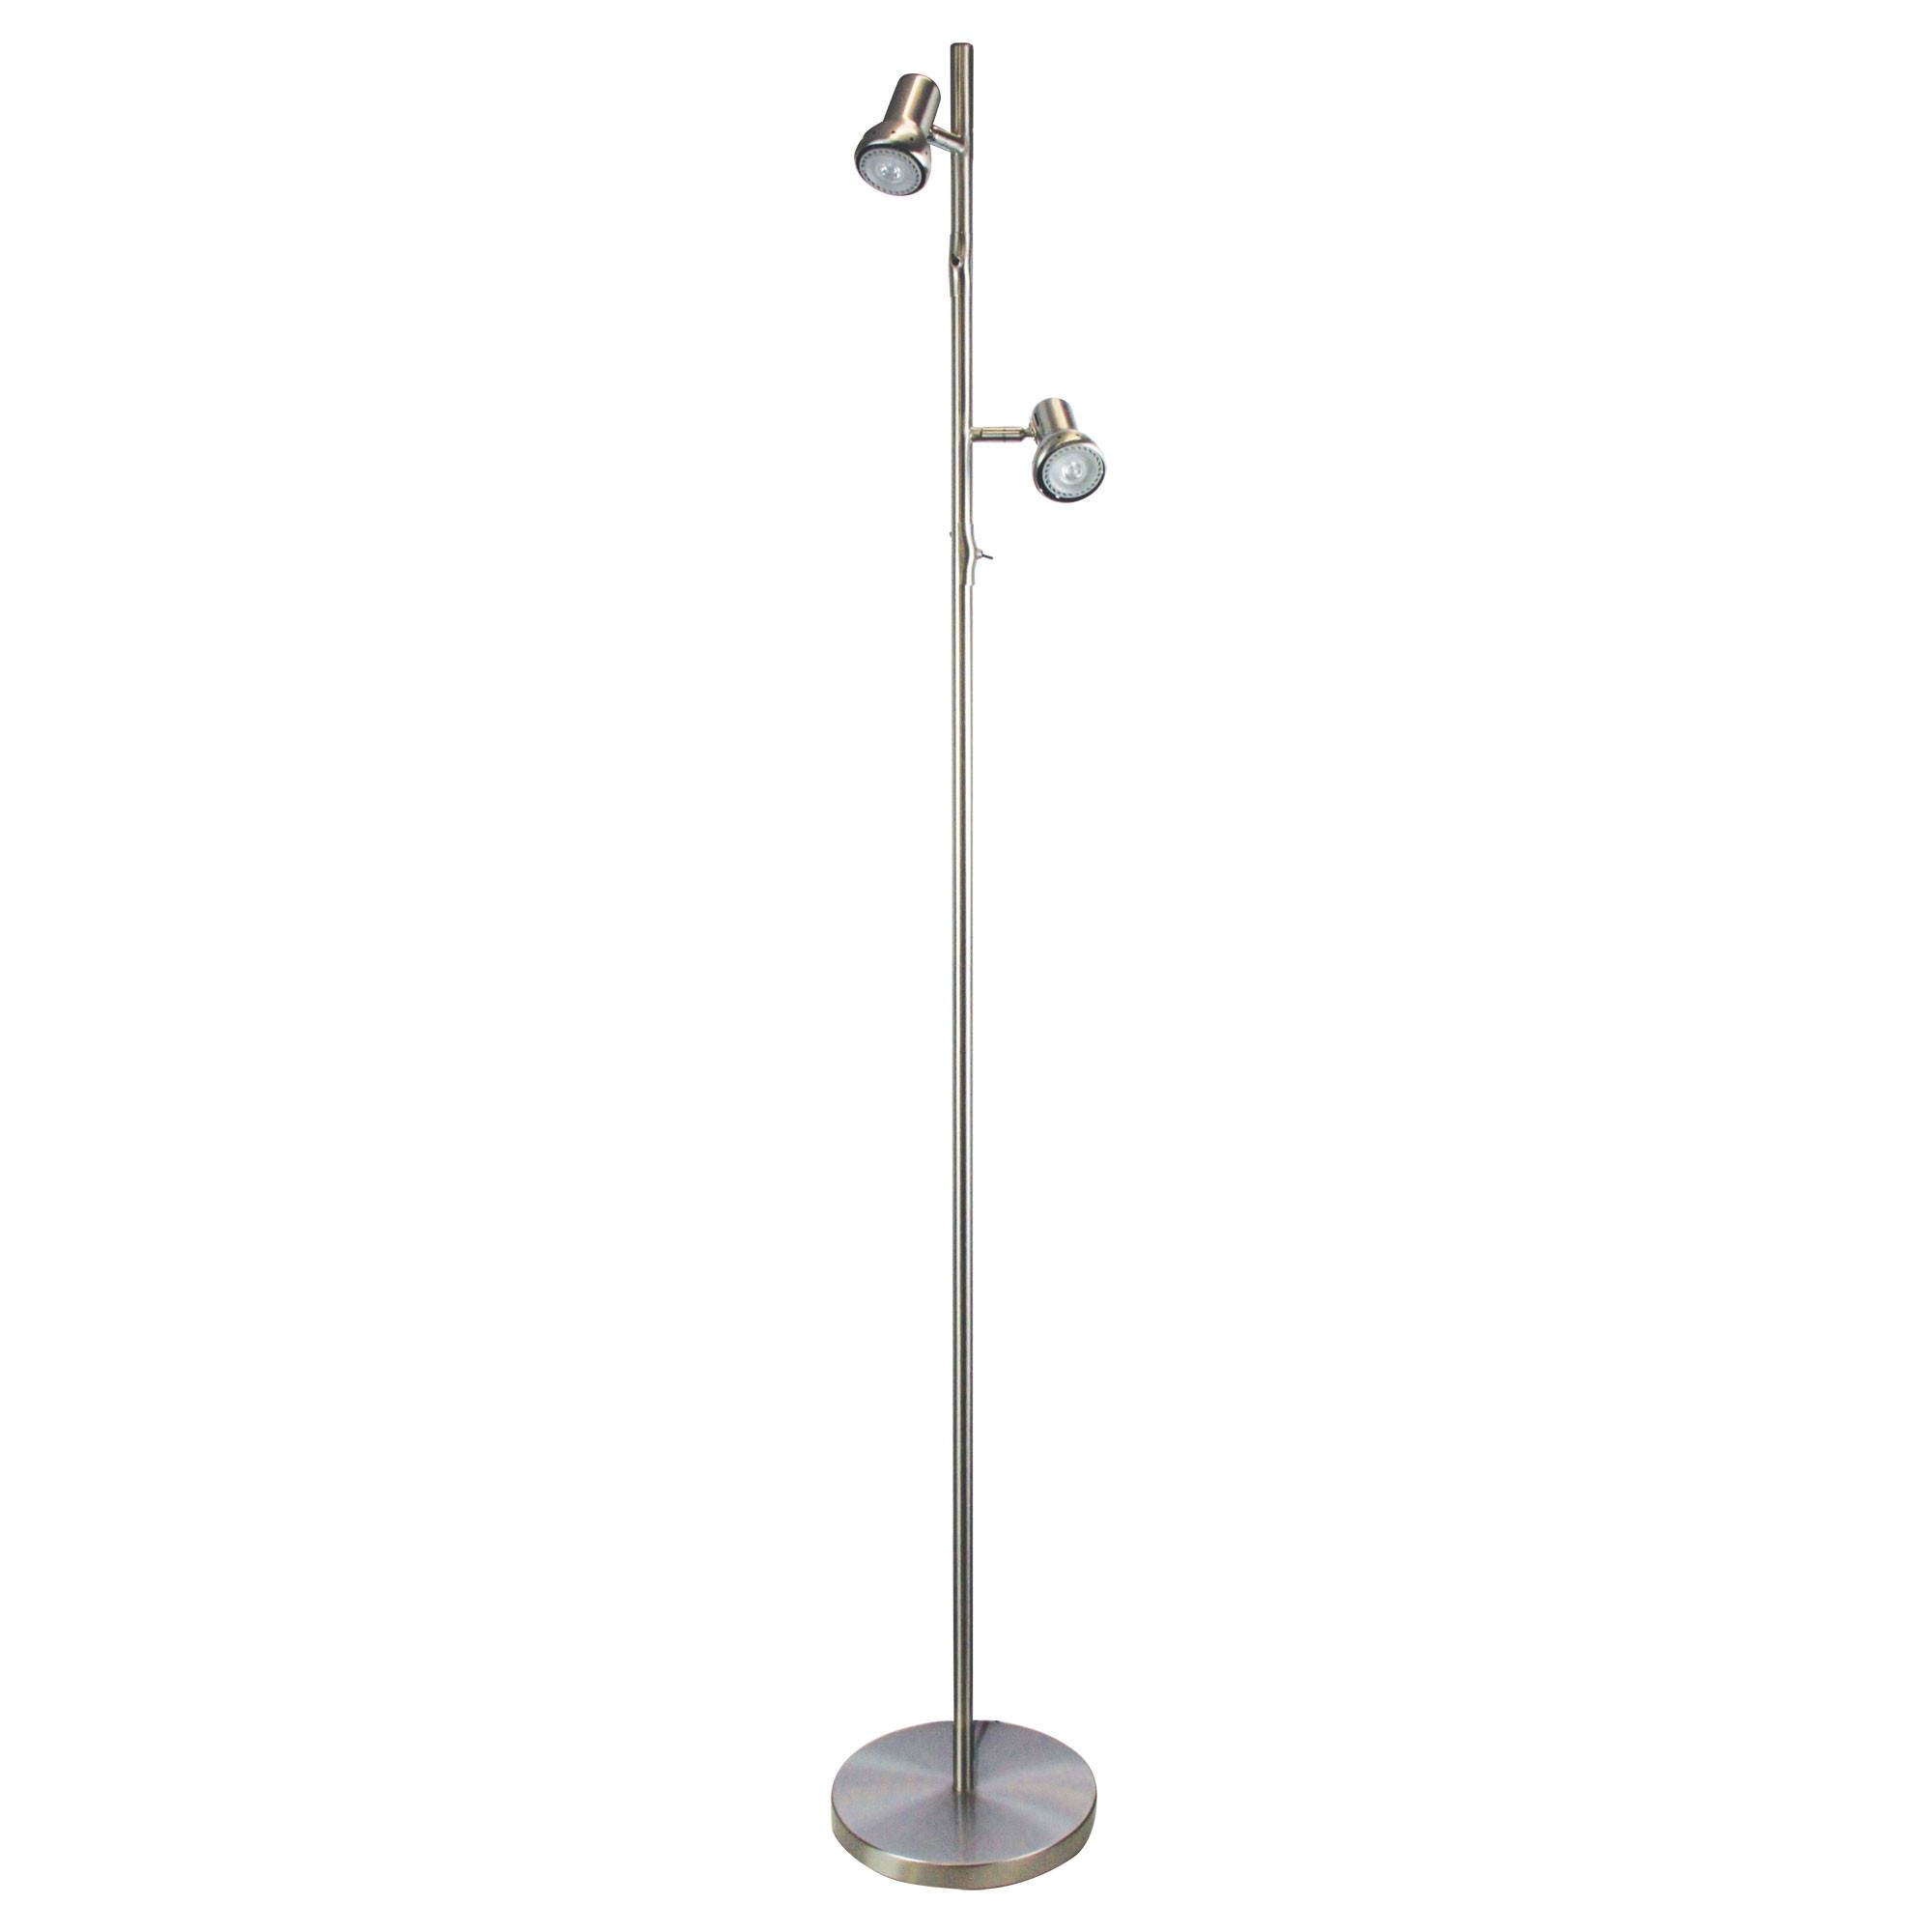 Daxam Metal Twin Adjustable LED Floor Lamp, Brushed Chrome